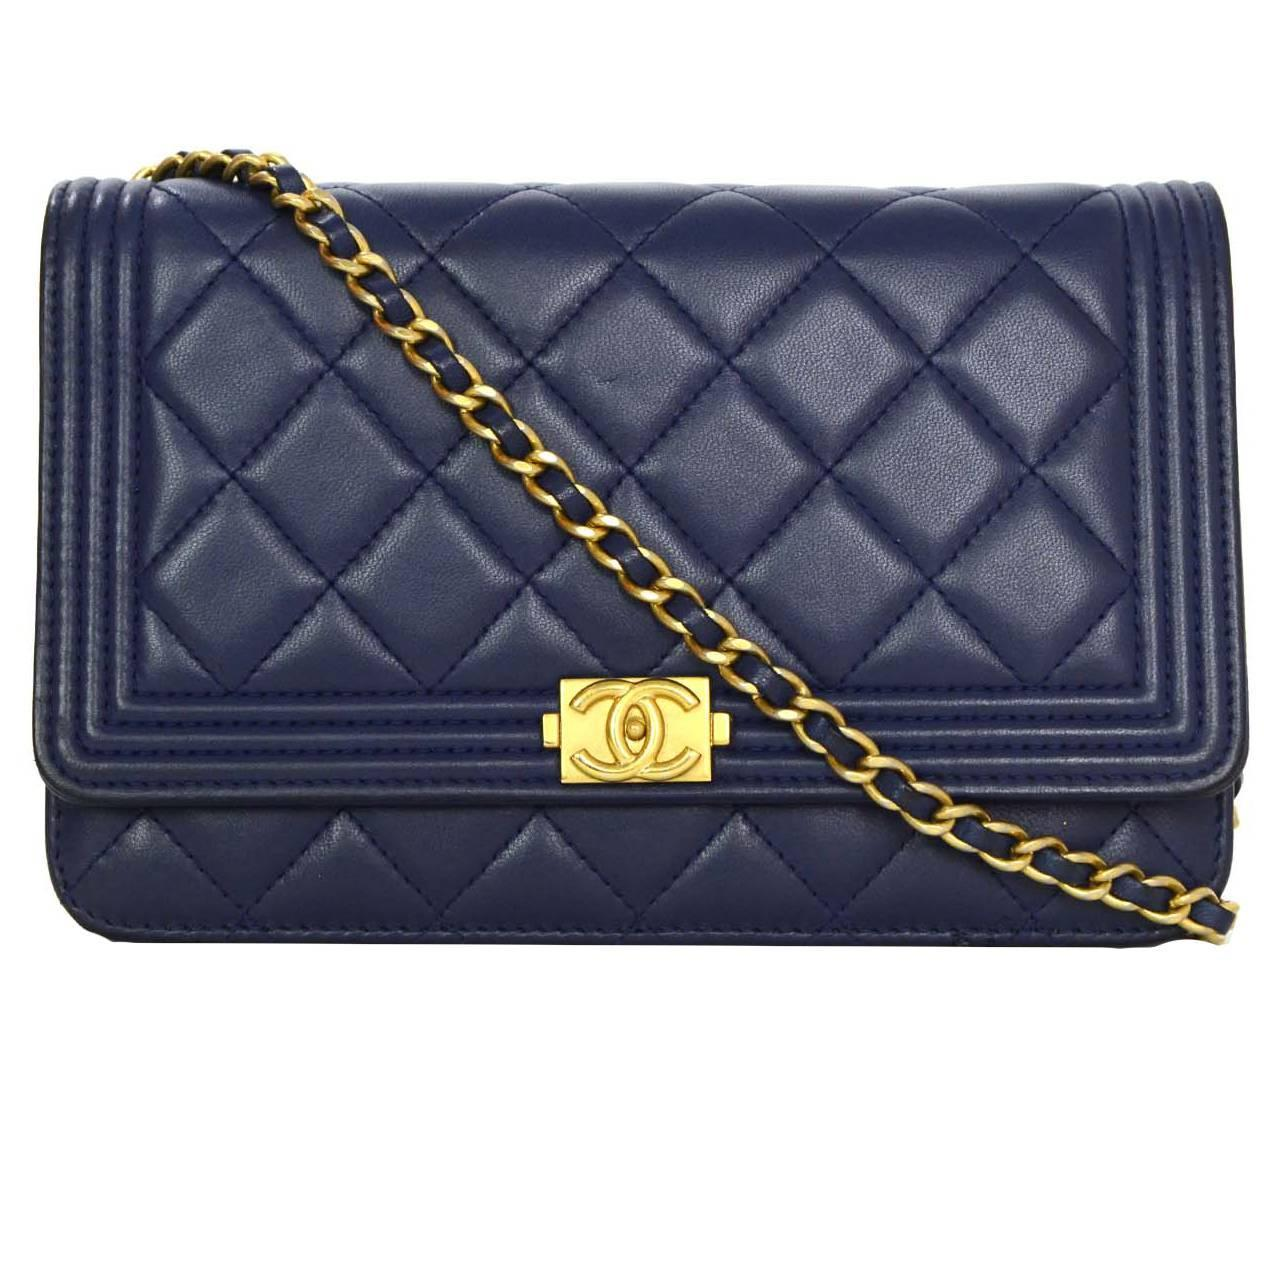 b78acb71e61c Chanel Wallet On A Chain Boy Bag   Stanford Center for Opportunity ...